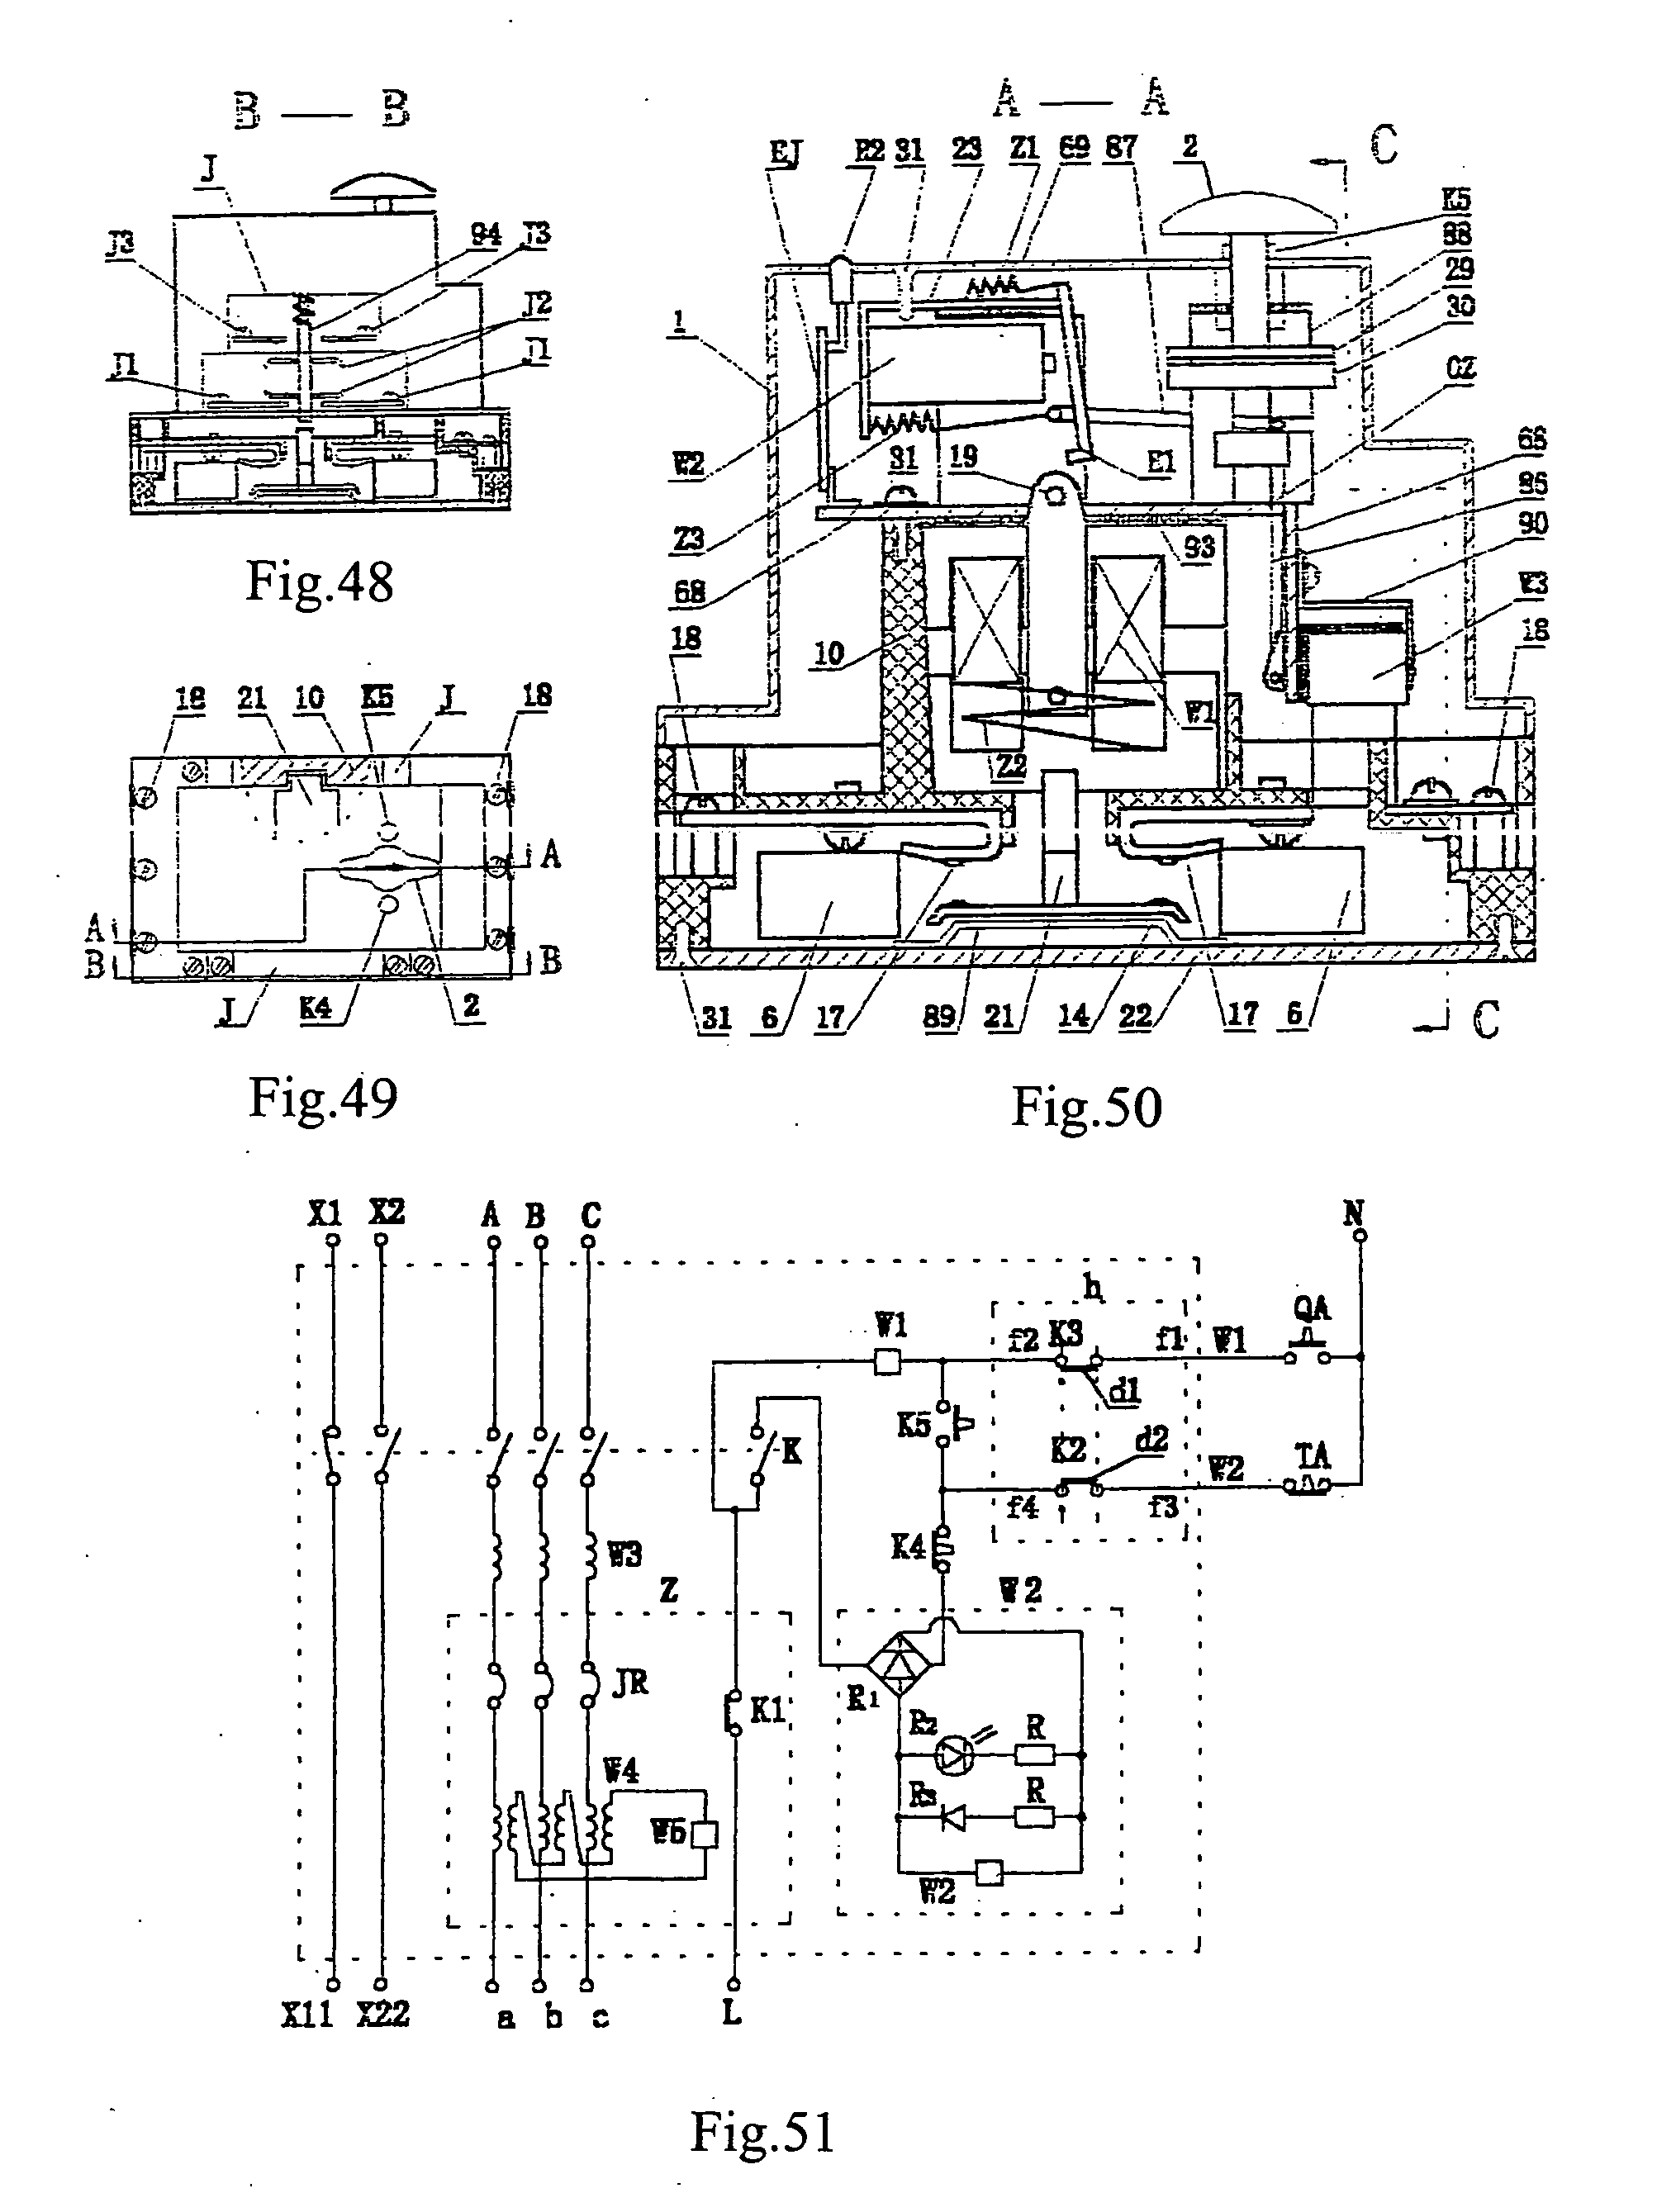 square d wiring diagram book file 0140 square square d wiring diagram book file 0140 wiring diagrams on square d wiring diagram book file